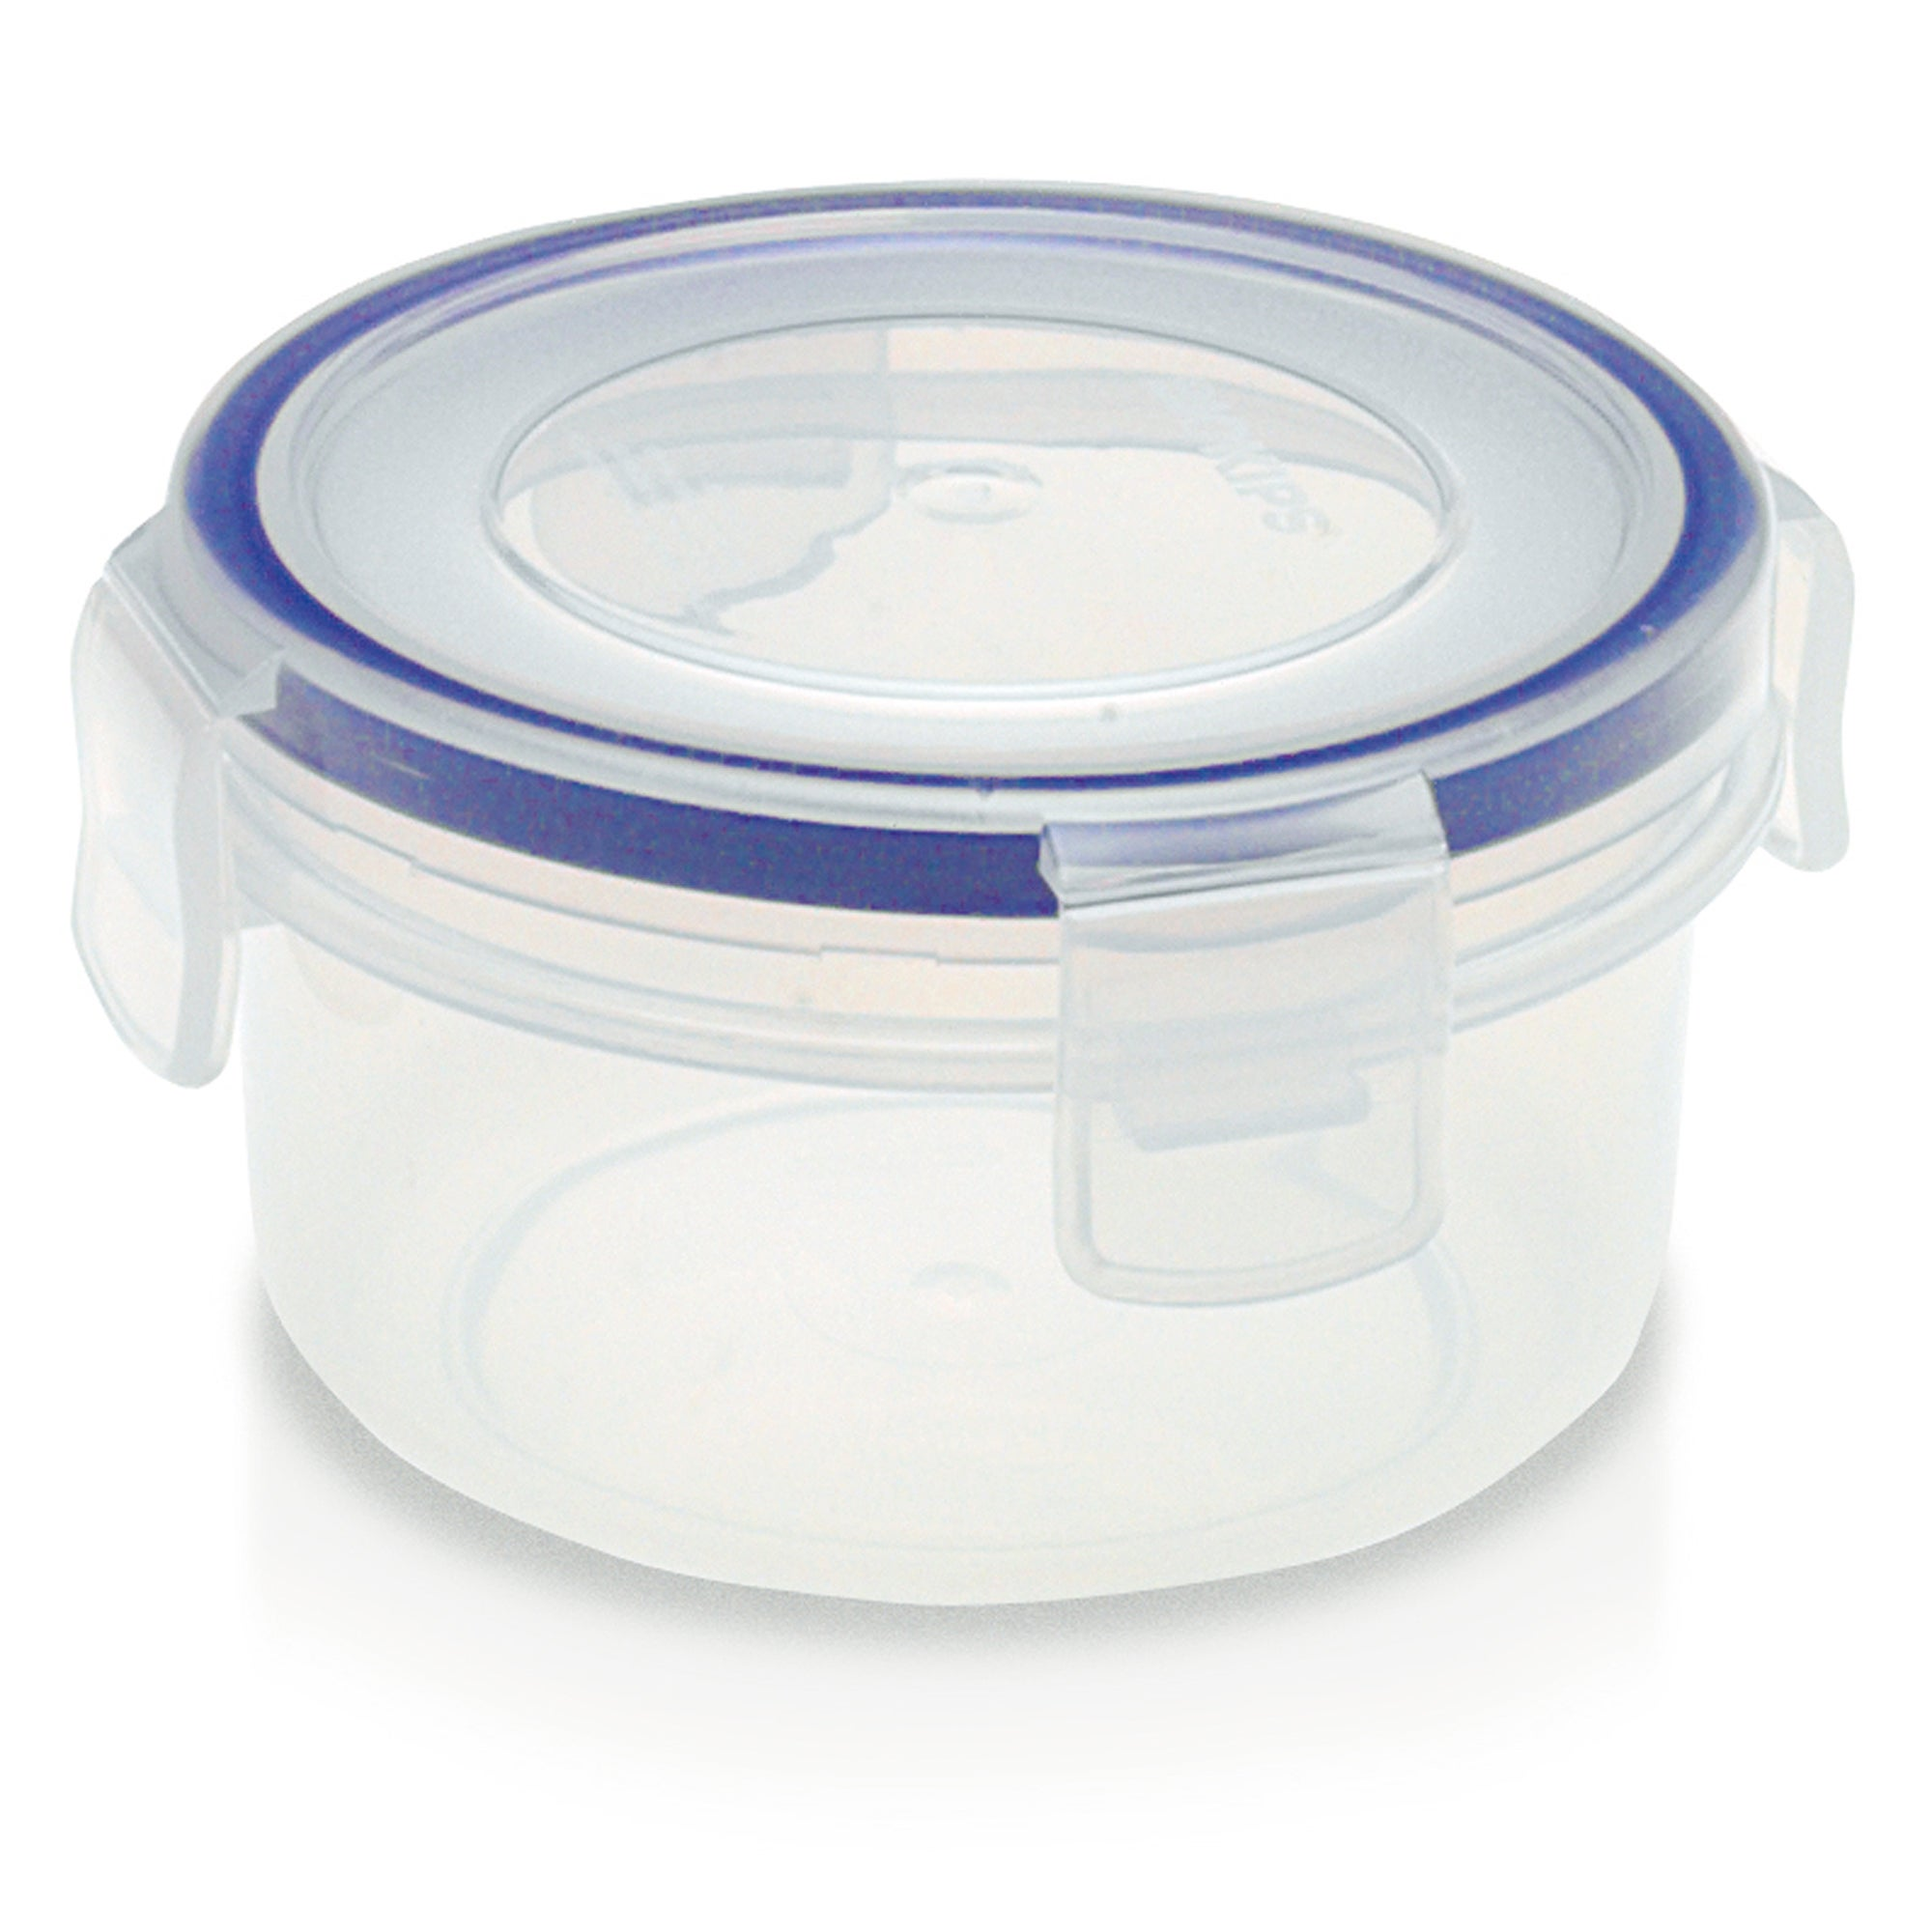 Addis Clip & Close Round Food Storage Box